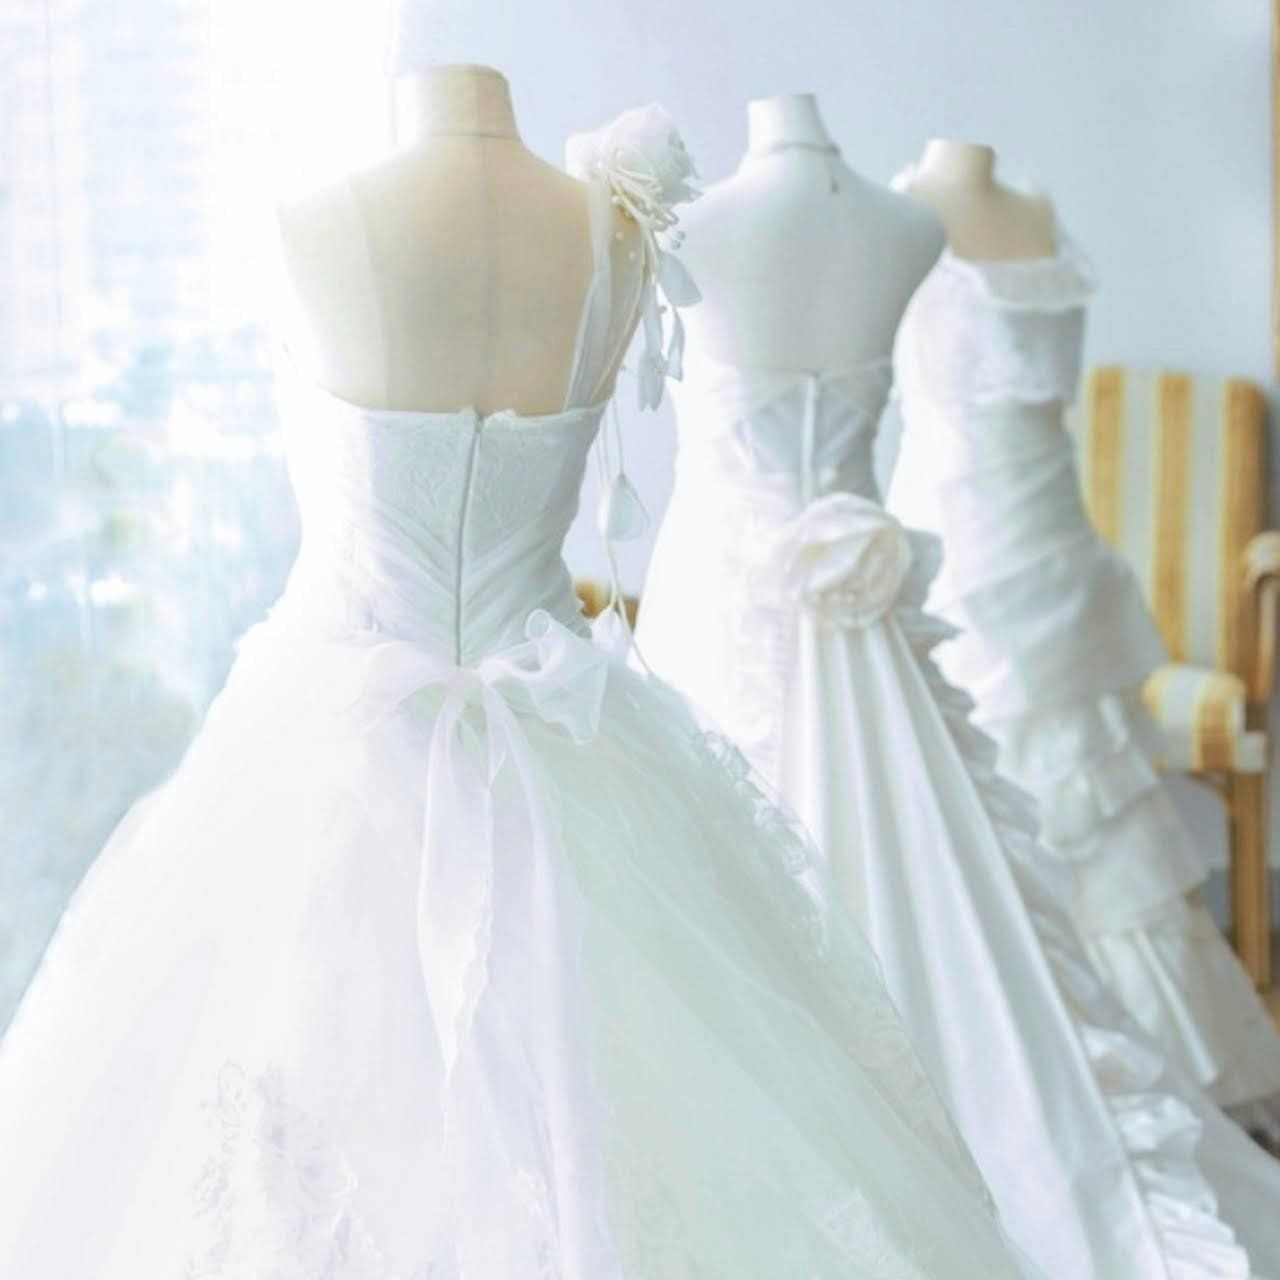 How Much Does It Cost To Dry Clean Wedding Dress Beautiful Peachy Cleaners Eco Friendly Dry Cleaner In To In 2020 Wedding Dresses Wedding Dress Cost Ball Gowns Wedding